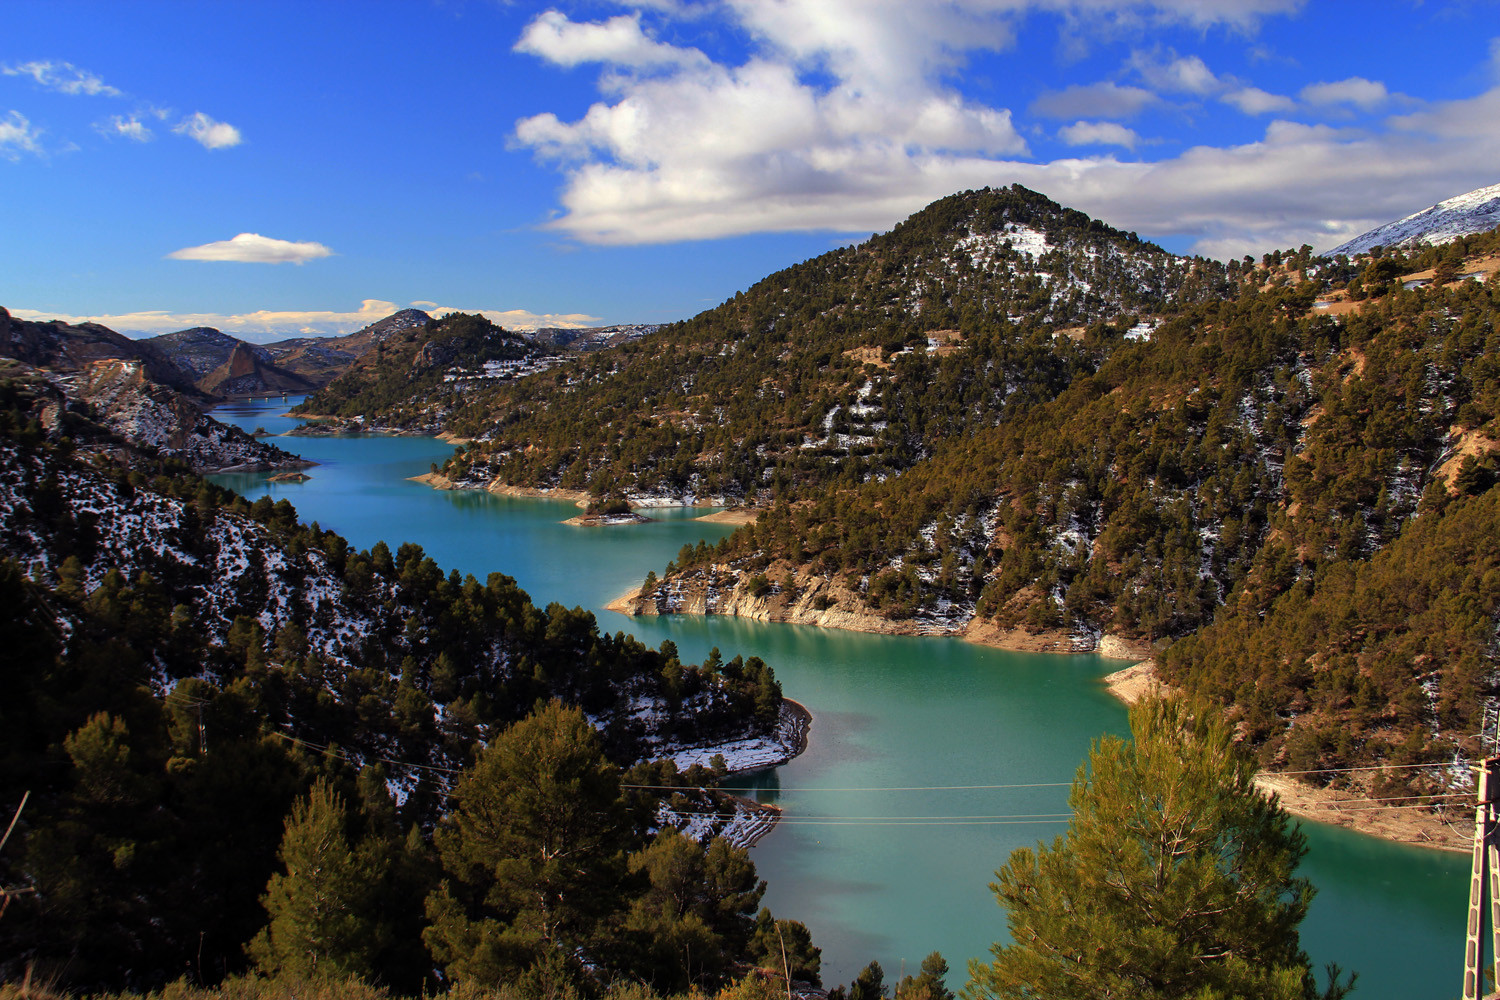 """Embalse de Portillo"" - PN Sierra de Castril, Granada - L05494"